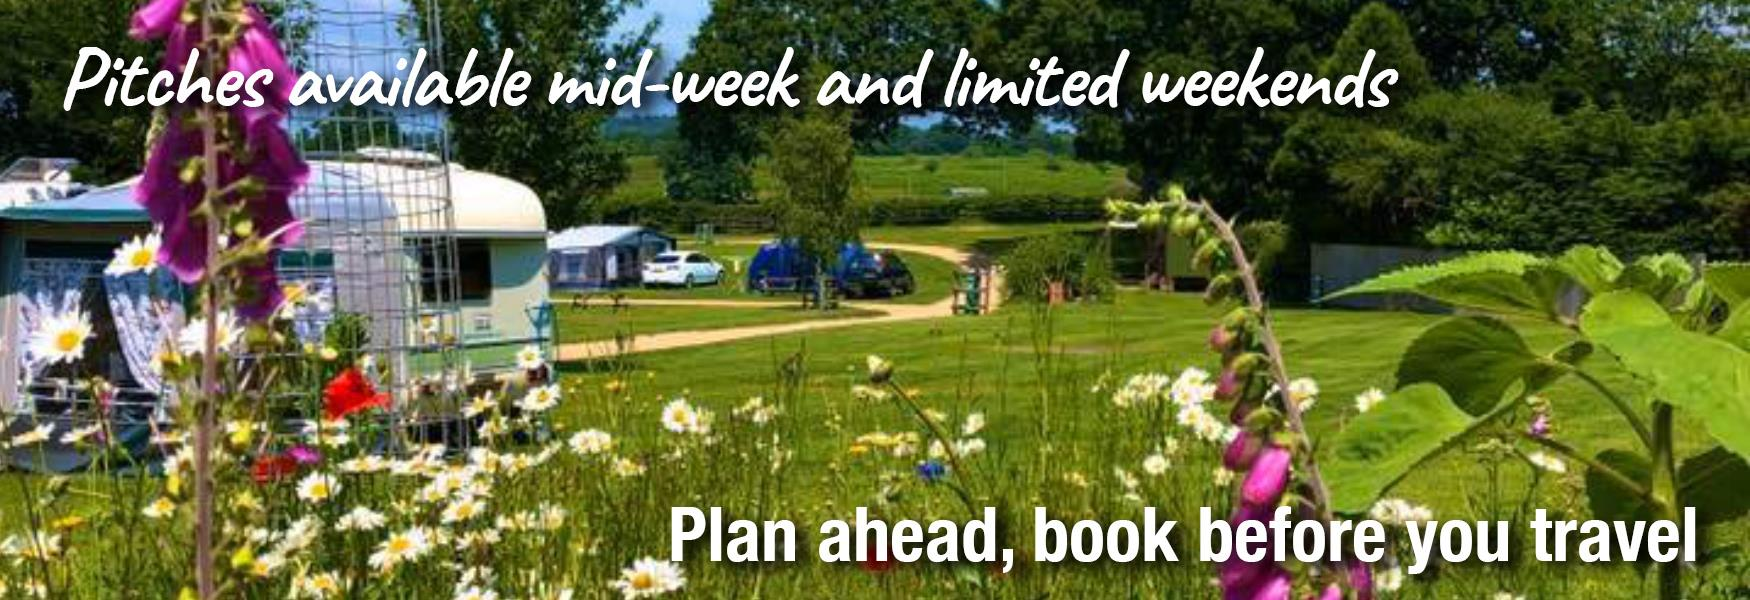 Camping in the New Forest with text about booking before you travel and availability